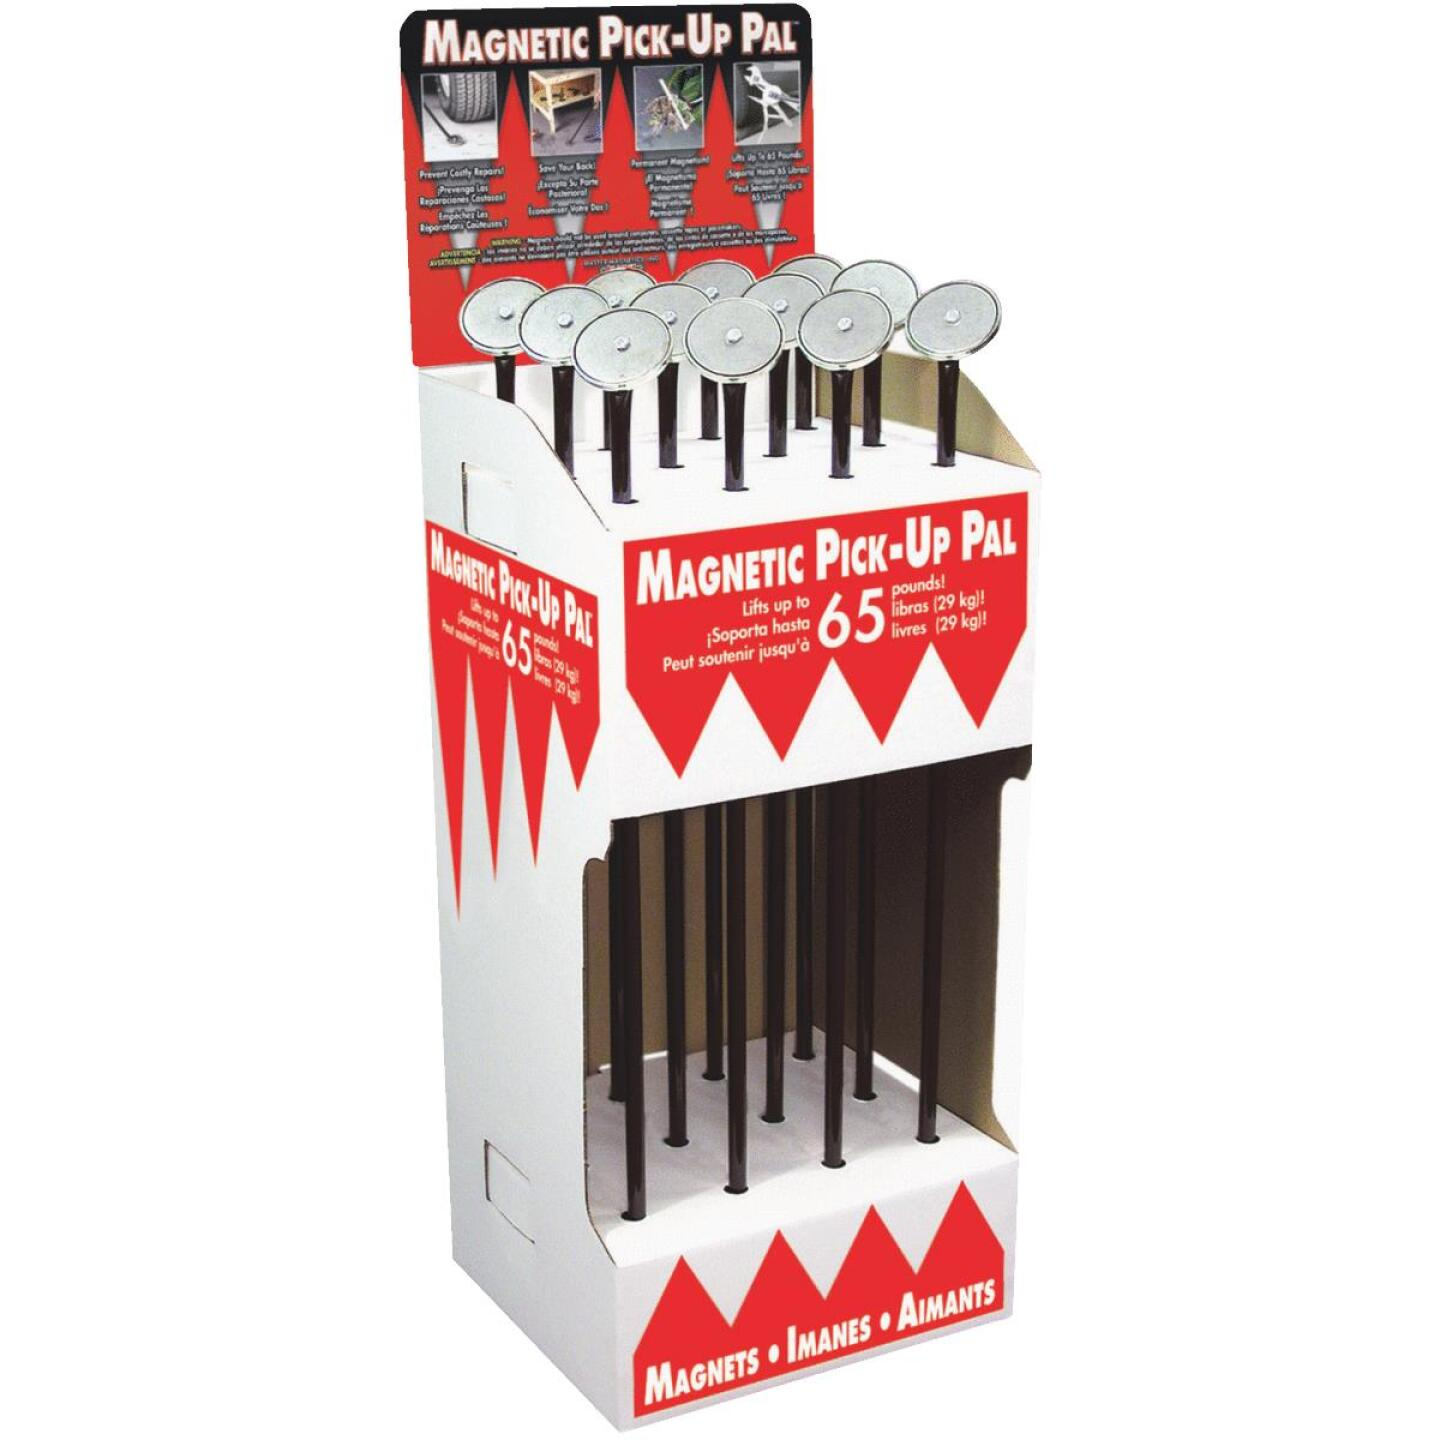 Master Magnetics 36 in. Magnetic Pick-Up Tool Image 2